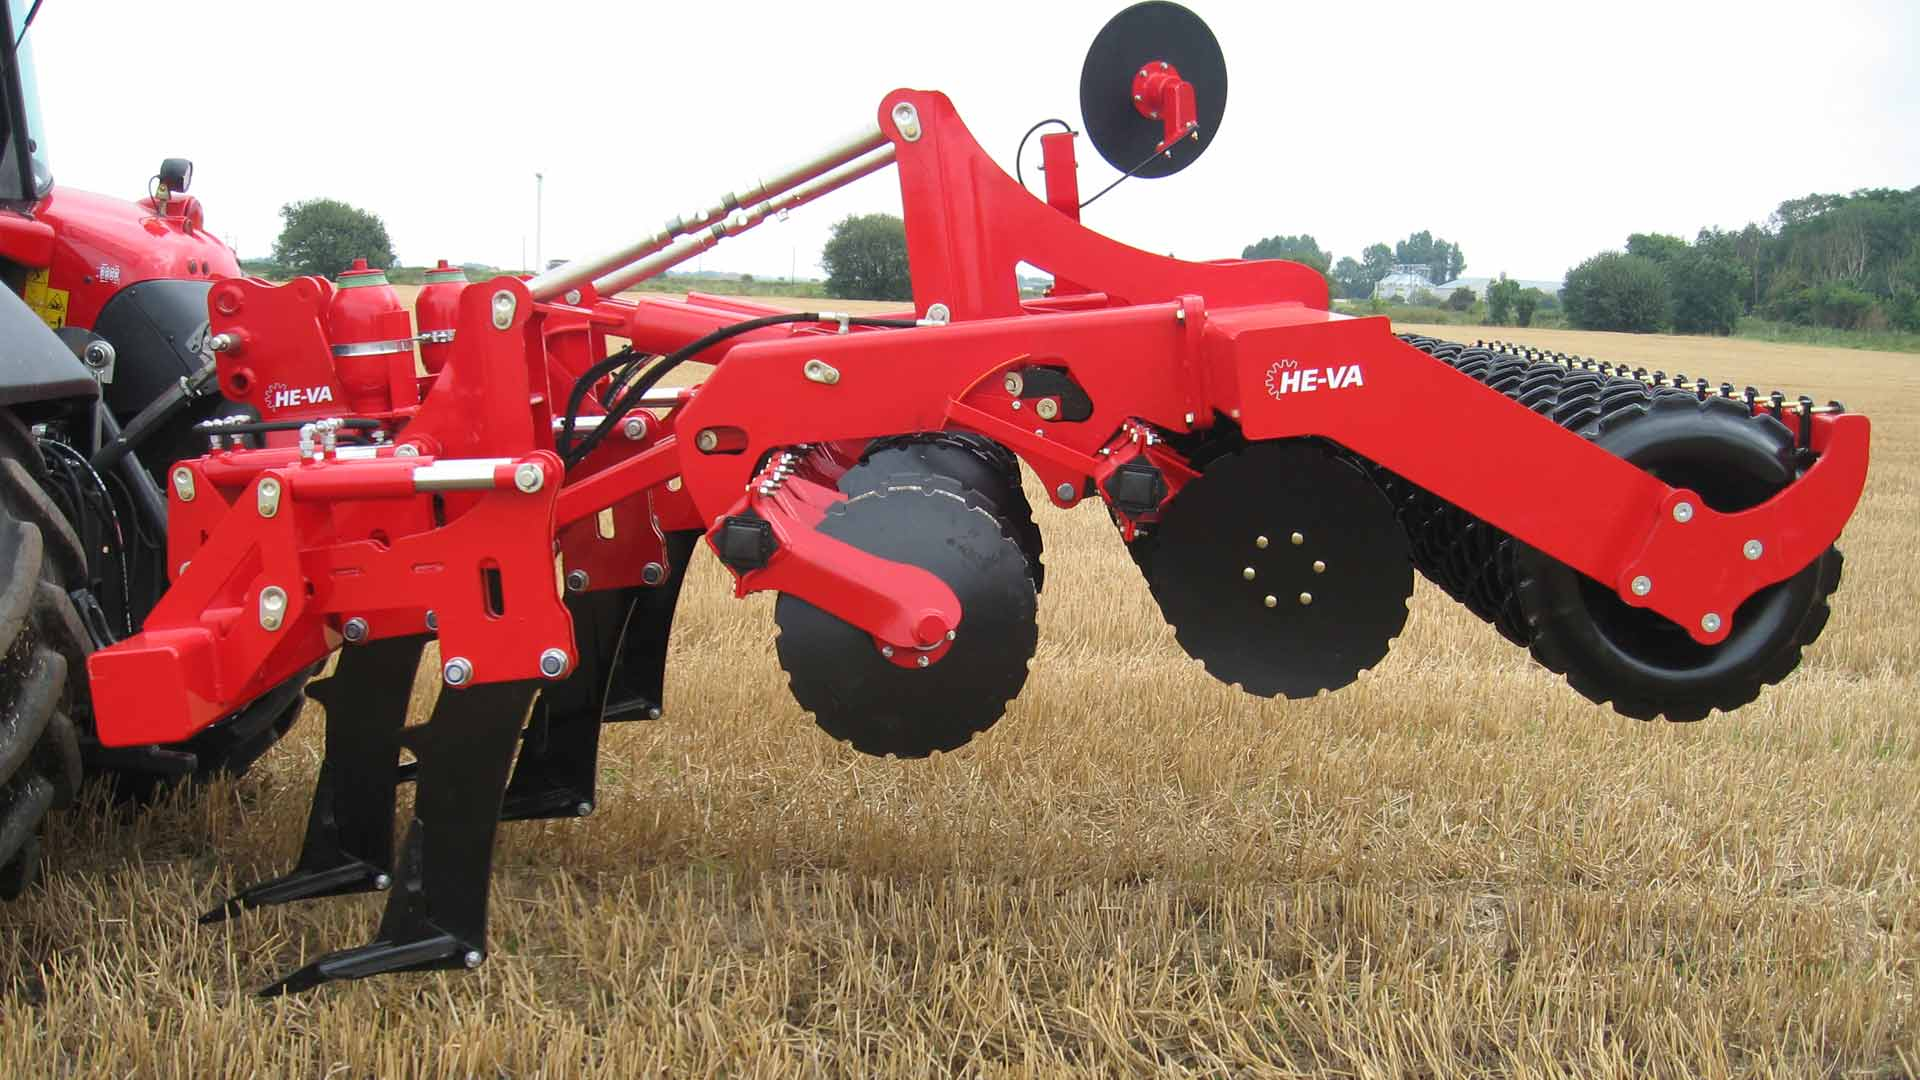 Lifting the discs, the Combi Disc can be used for in-depth soil loosening.